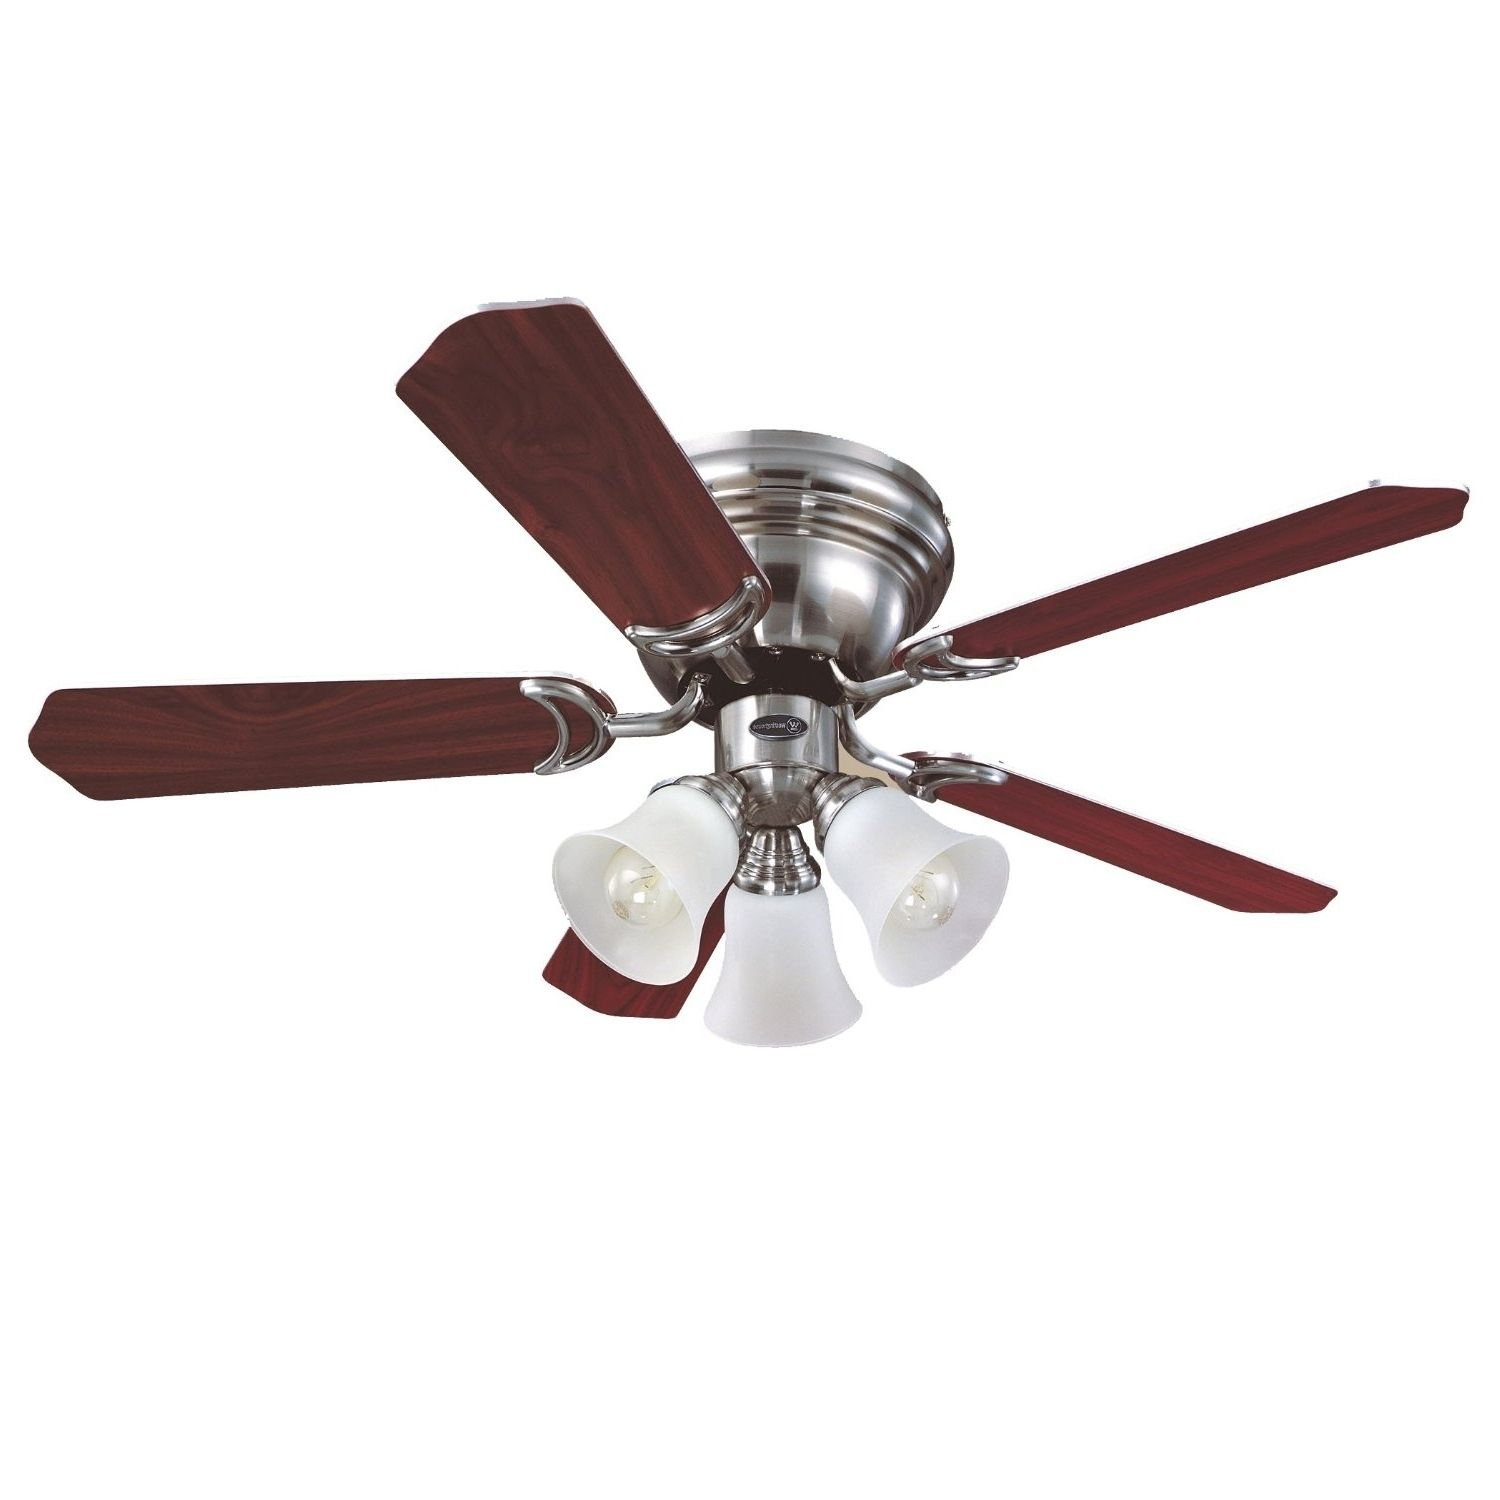 Top Rated Ceiling Fans Consumer Reports